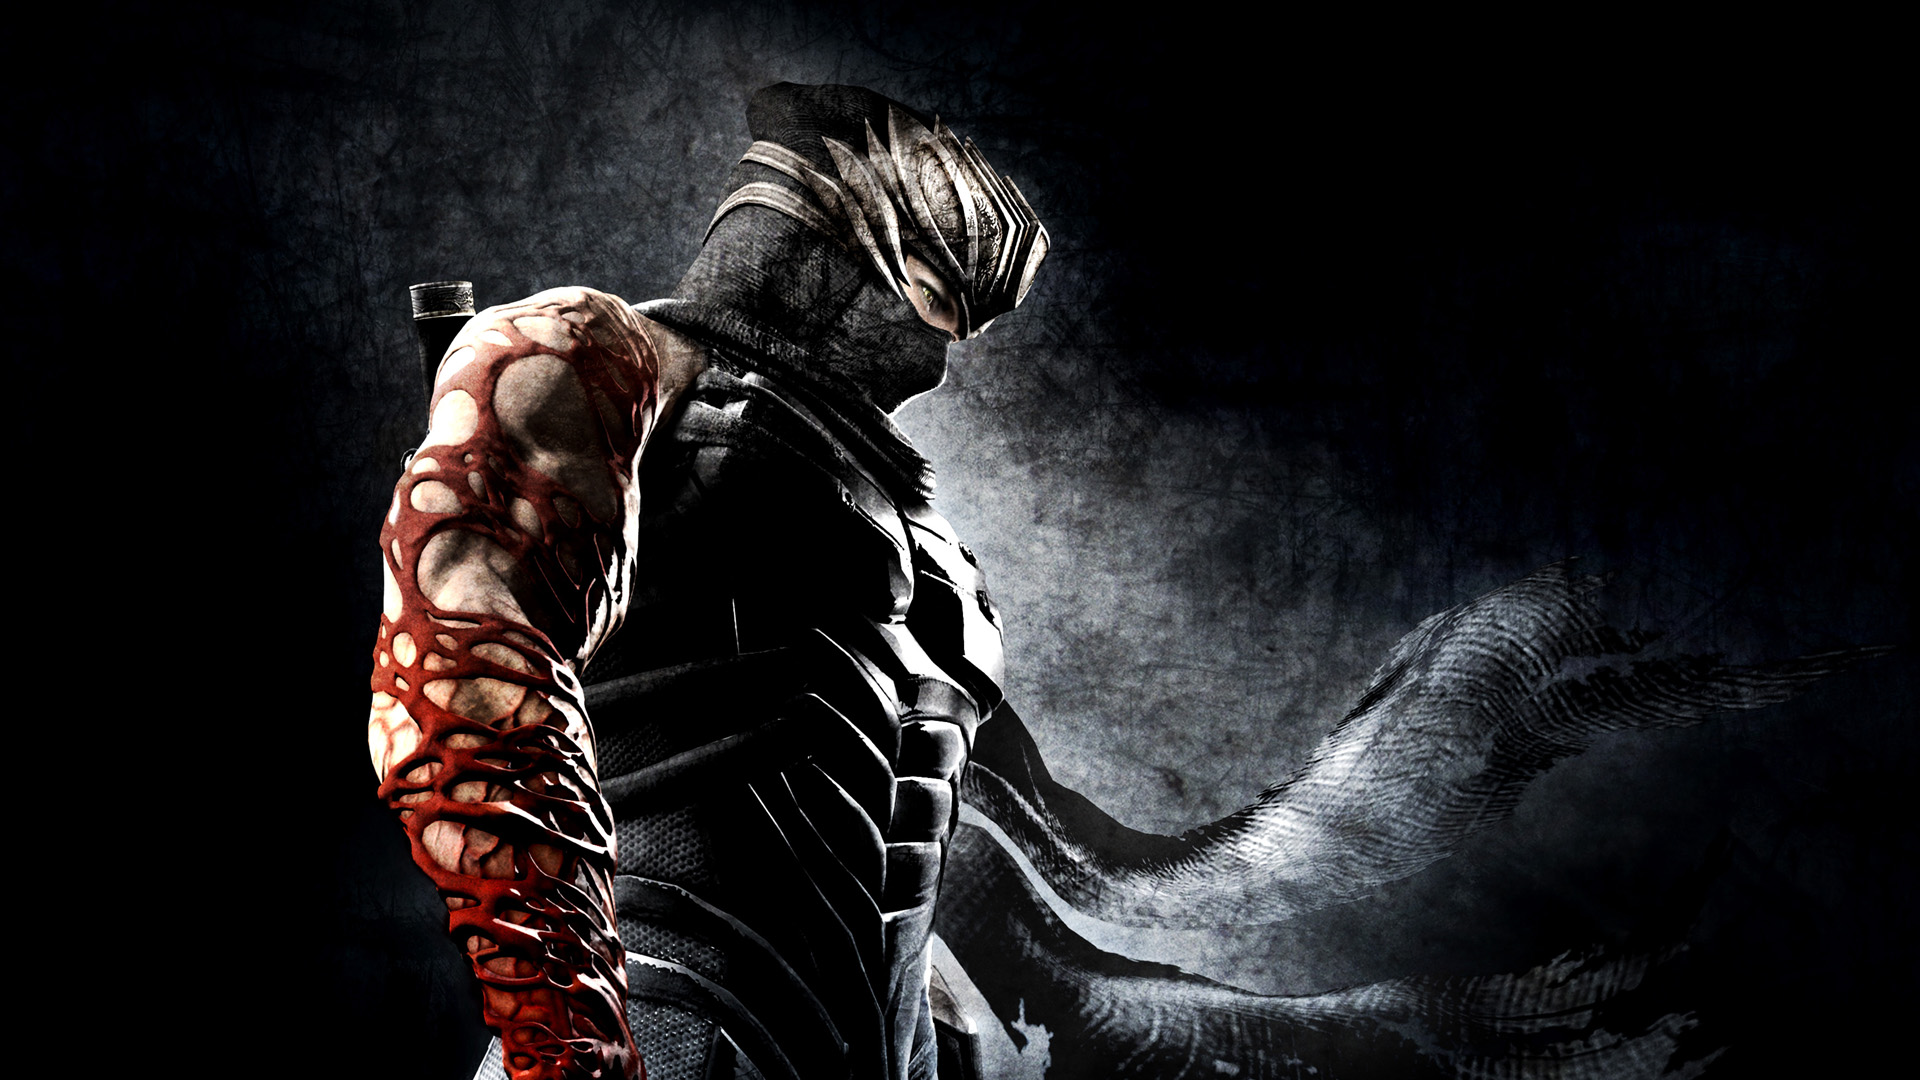 ninja gaiden wallpapers for desktop - photo #7